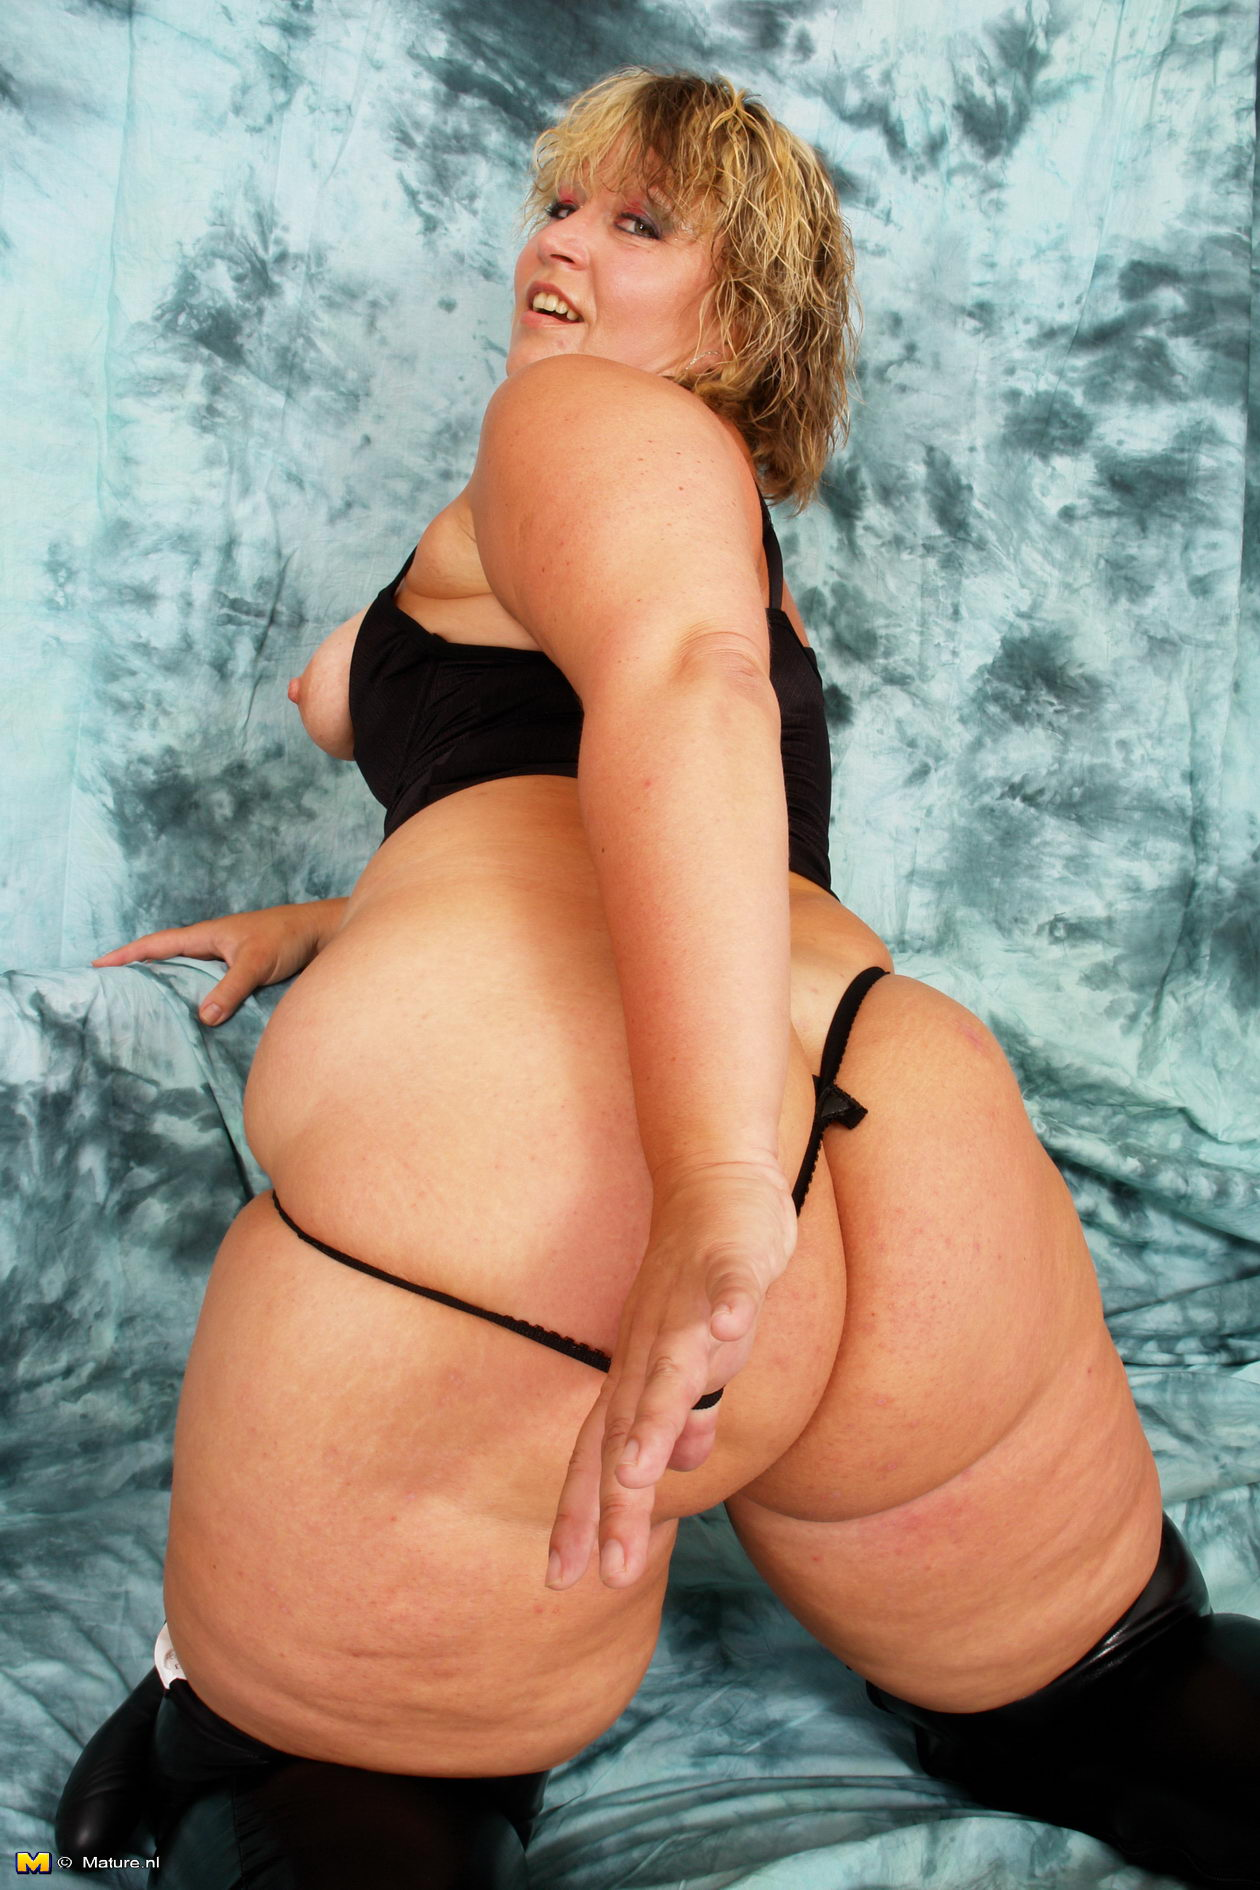 big ass mature gallery-adult videoonline